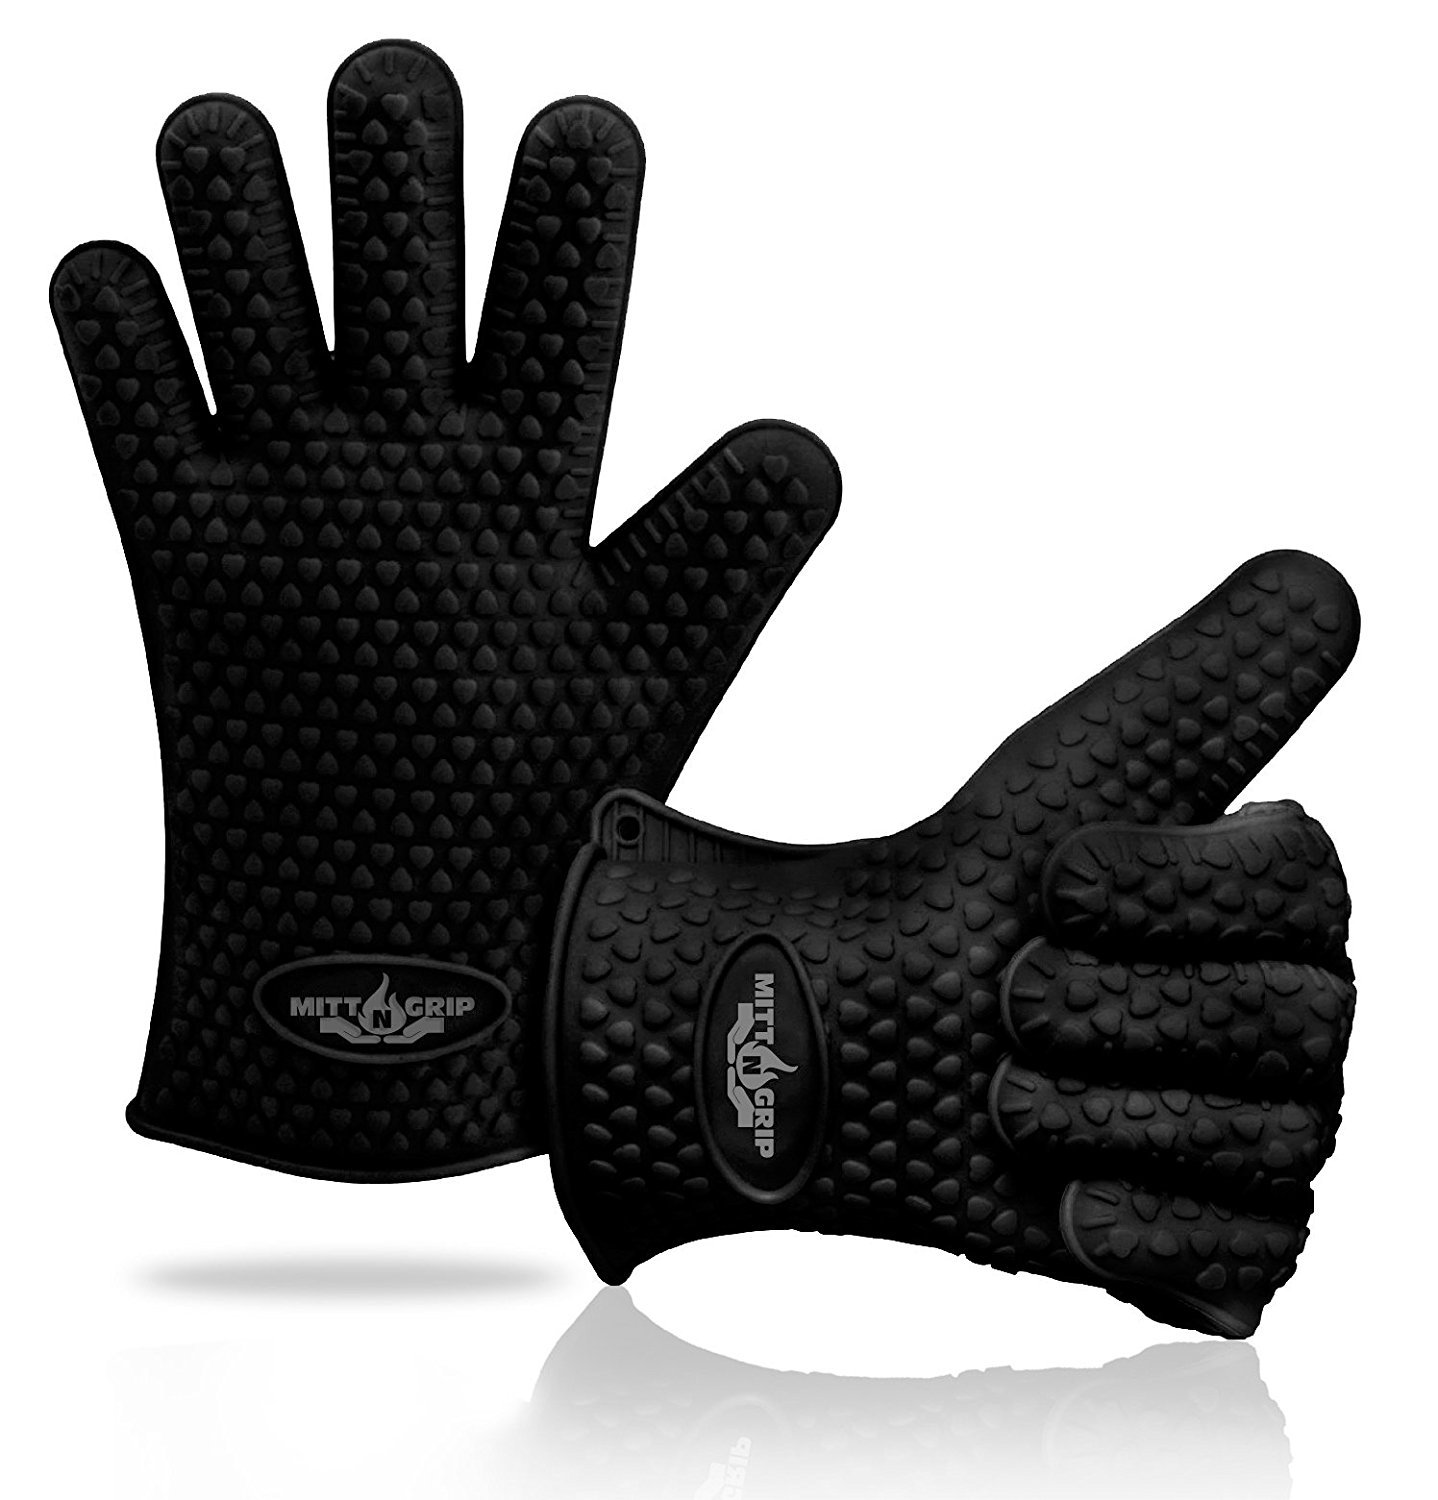 Mitt-N-Grip Extra Thick Silicone Oven Gloves - Black (Set of 2)